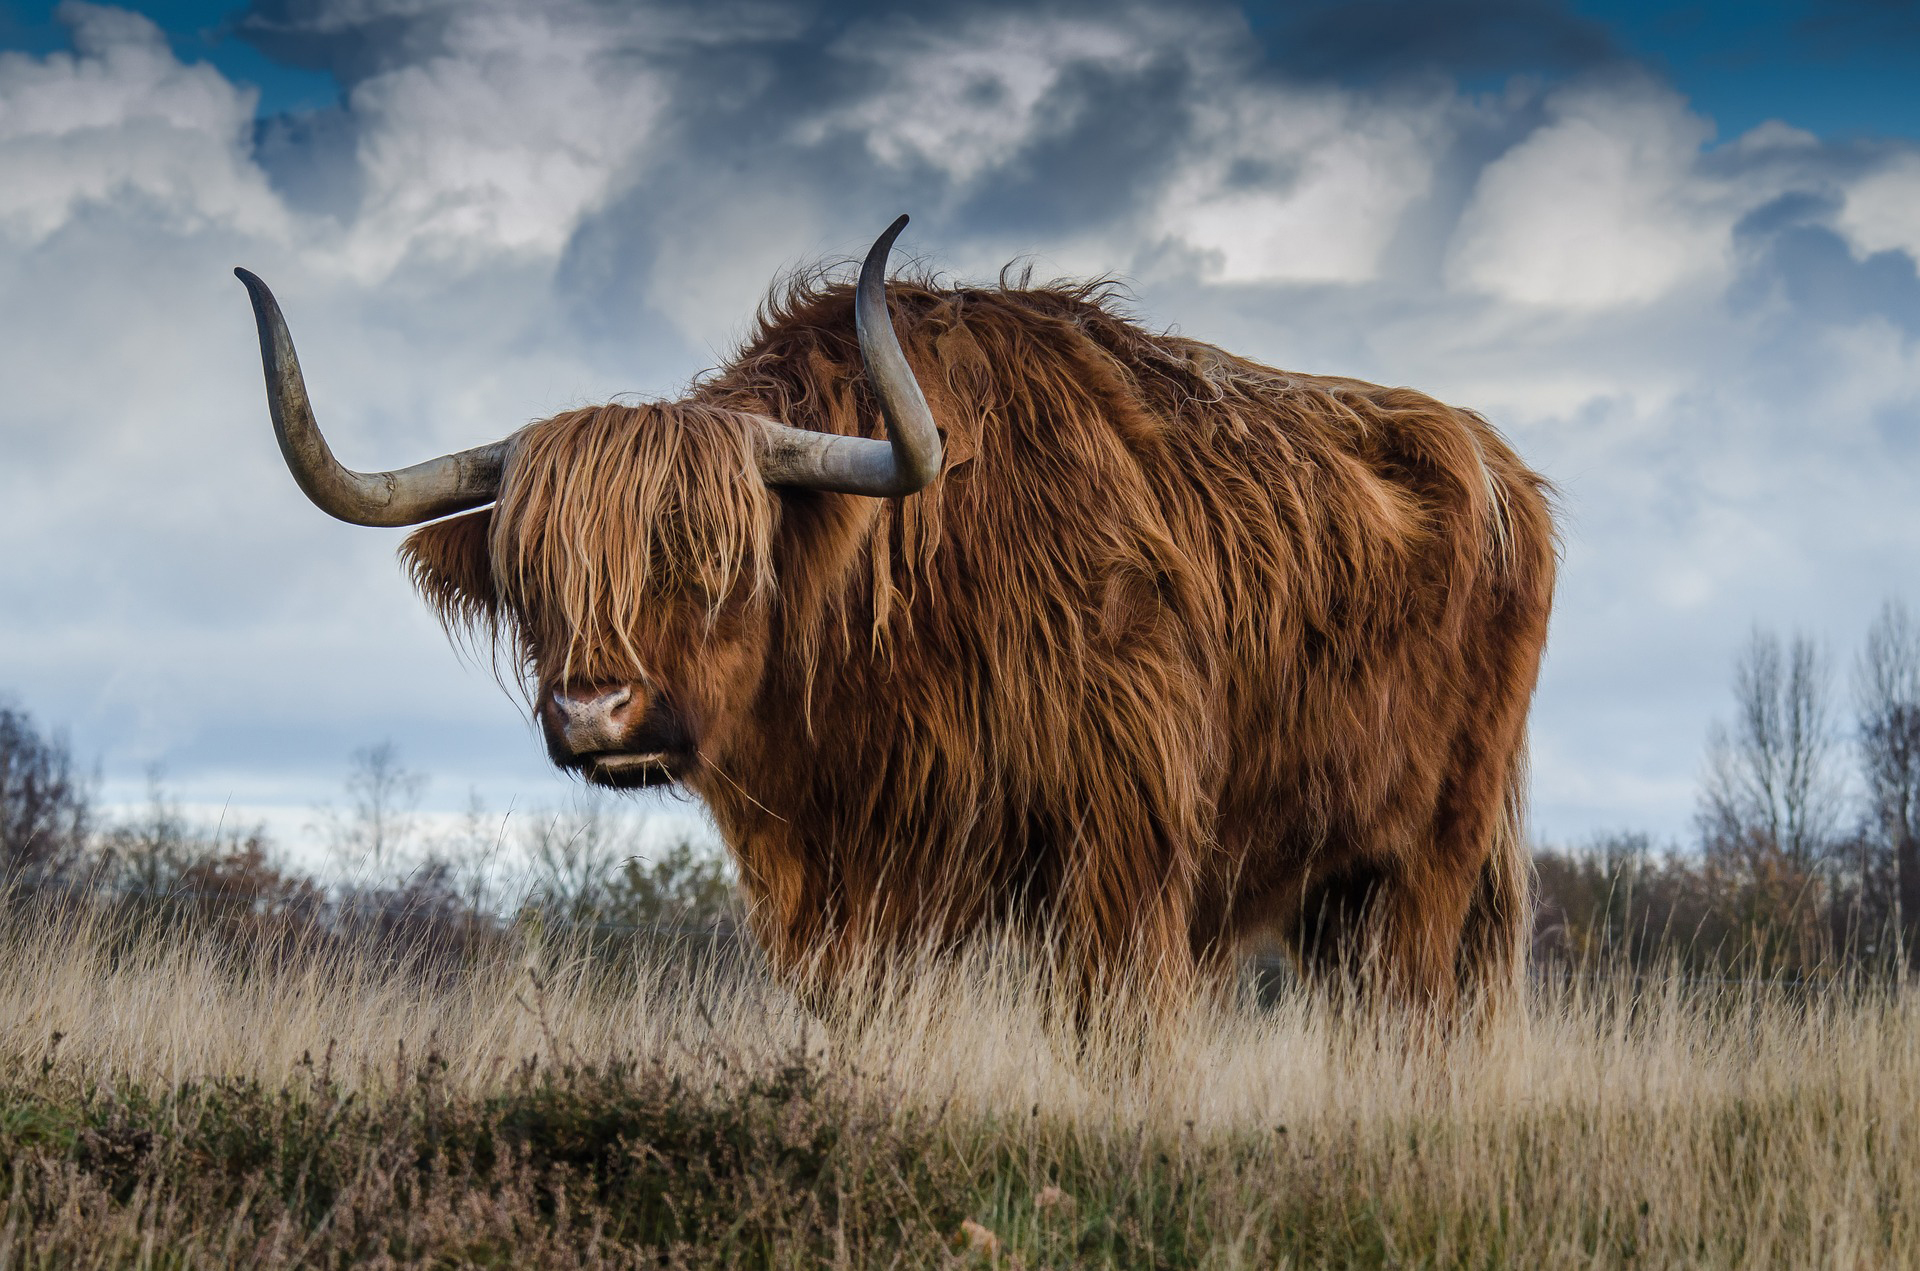 Highland Cow from stock photography site